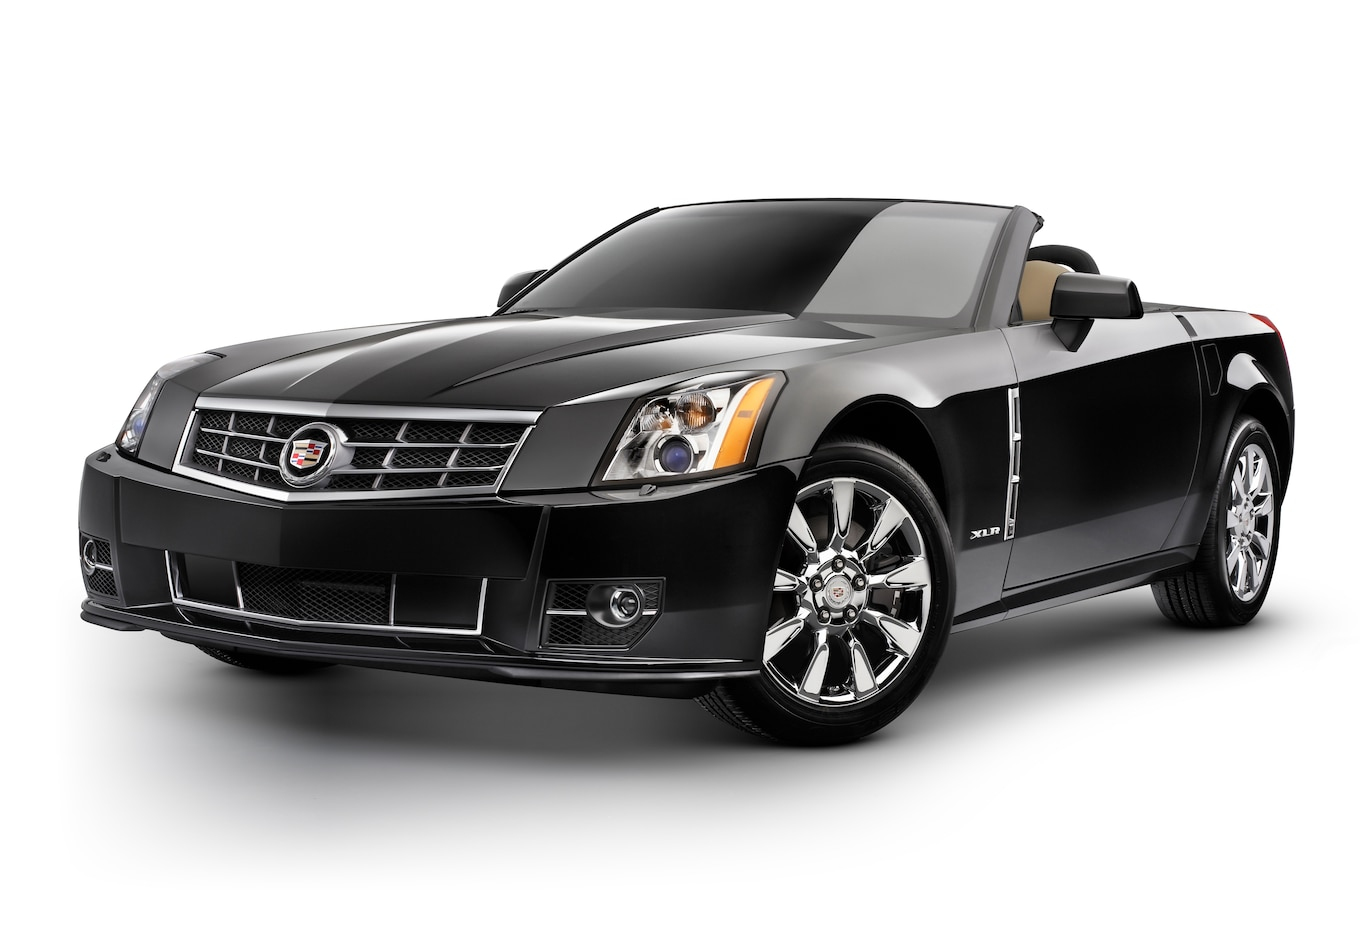 2009 Cadillac XLR Unveiled With Updated Styling Features